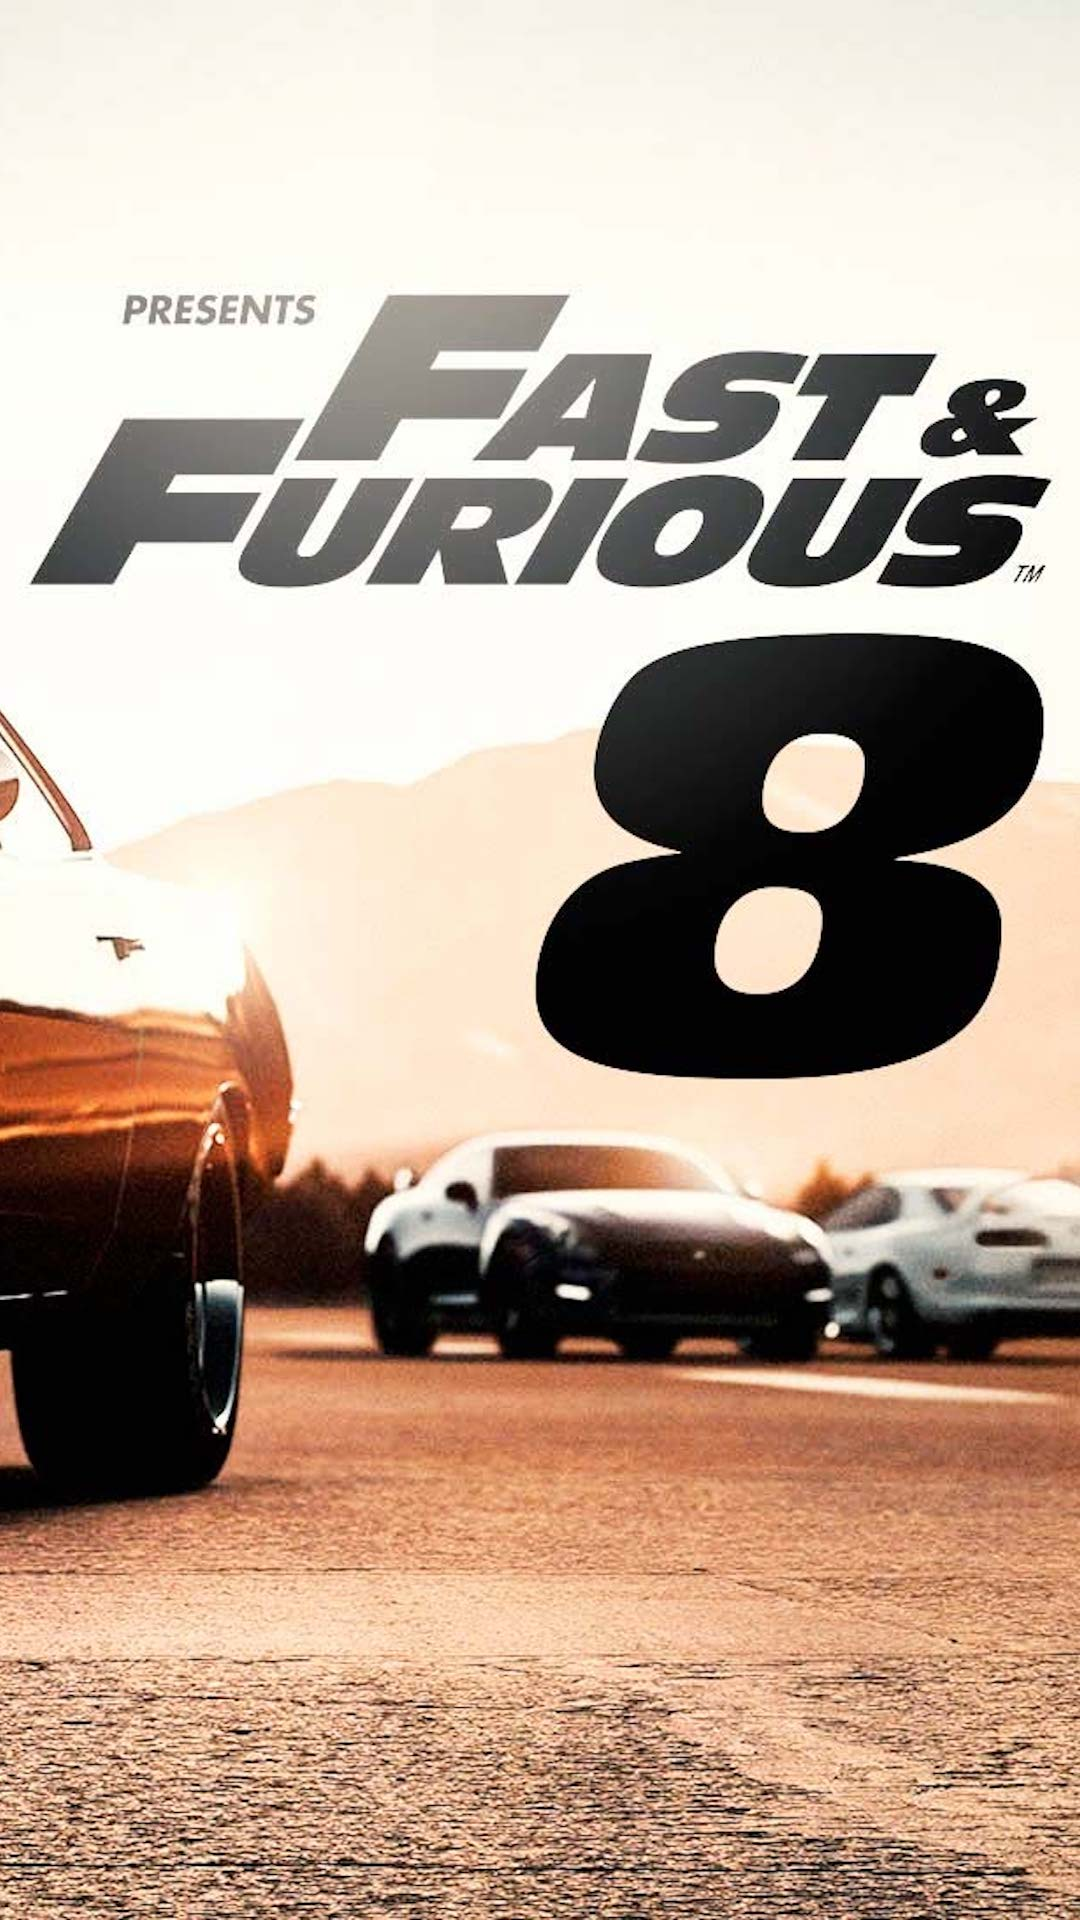 Fast & Furious 8 Movies iPhone Wallpaper - Wallpapers iPhone